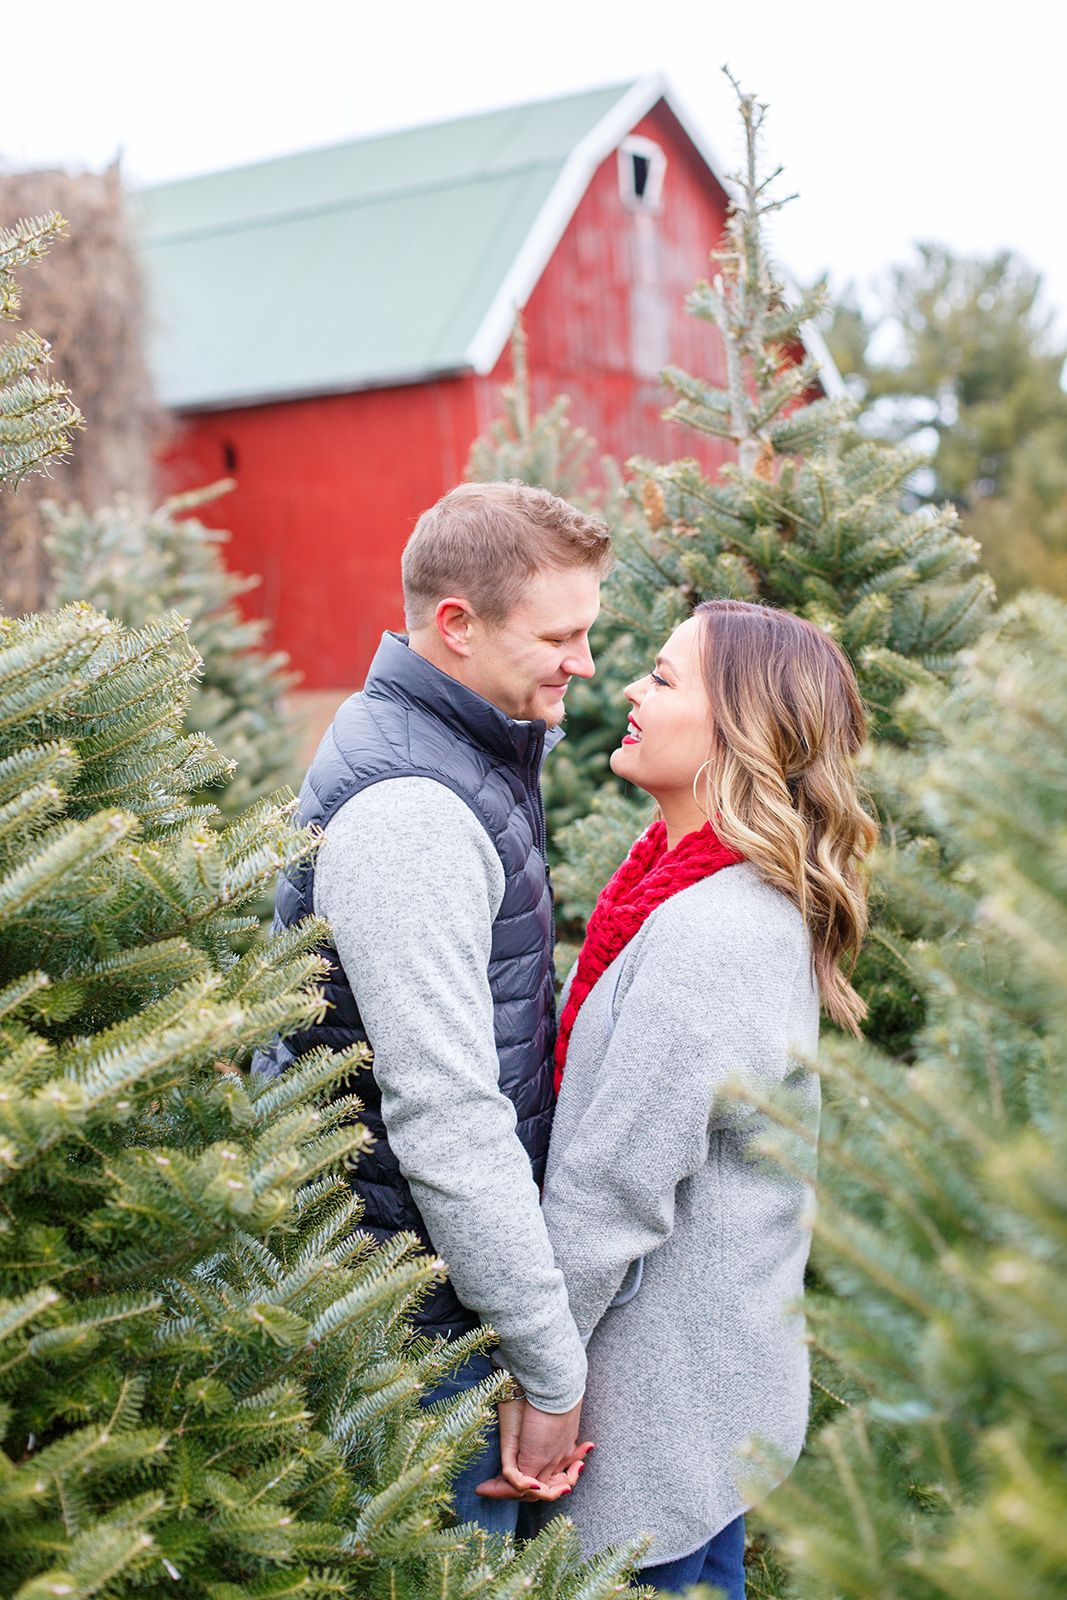 Dressing For A Tree Farm Couples Photo Shoot Outfit Inspo Kelsie Kristine Holiday Photoshoot Couples Photoshoot Tree Farm Photo Shoot